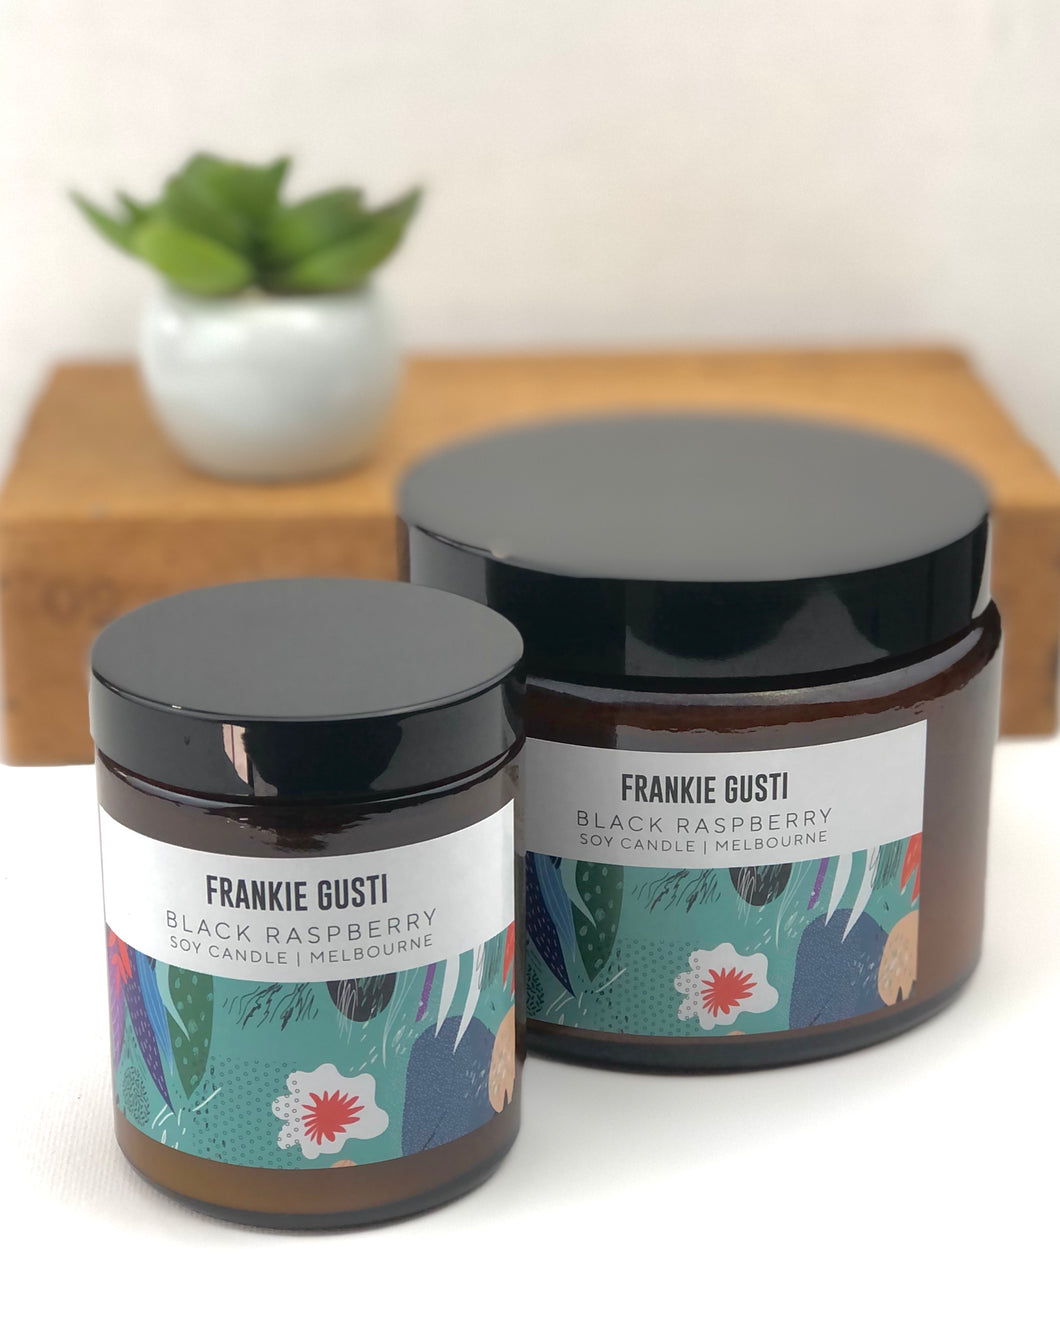 Frankie Gusti candle - Black Raspberry